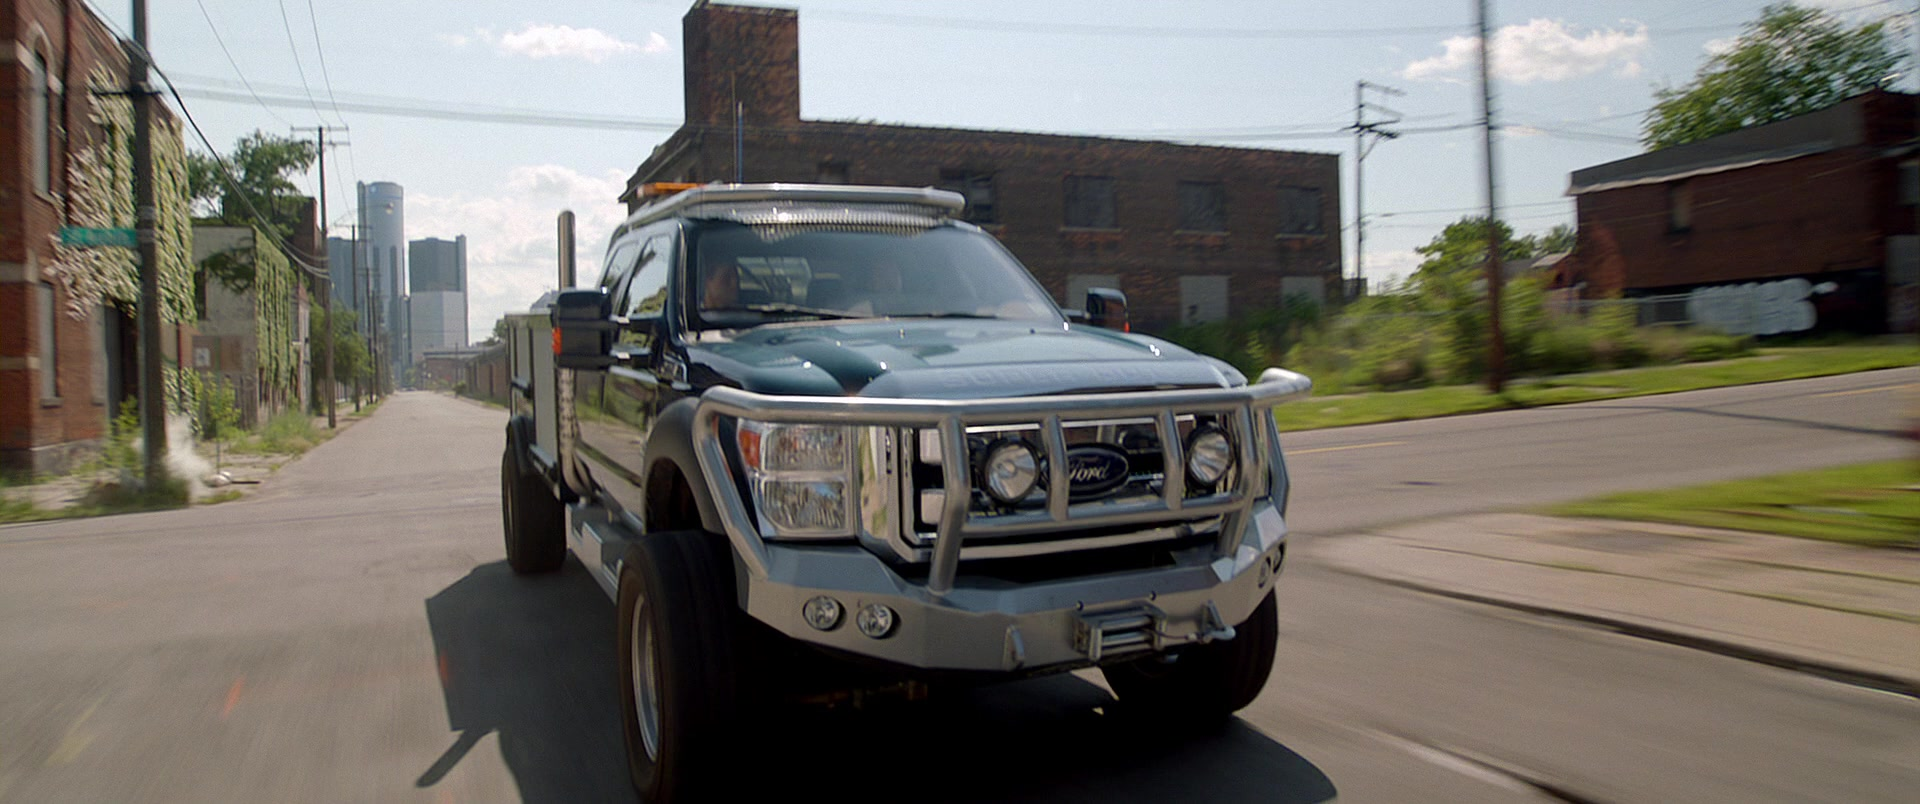 Ford F-Series Super Duty Truck in Need for Speed (2014) Movie